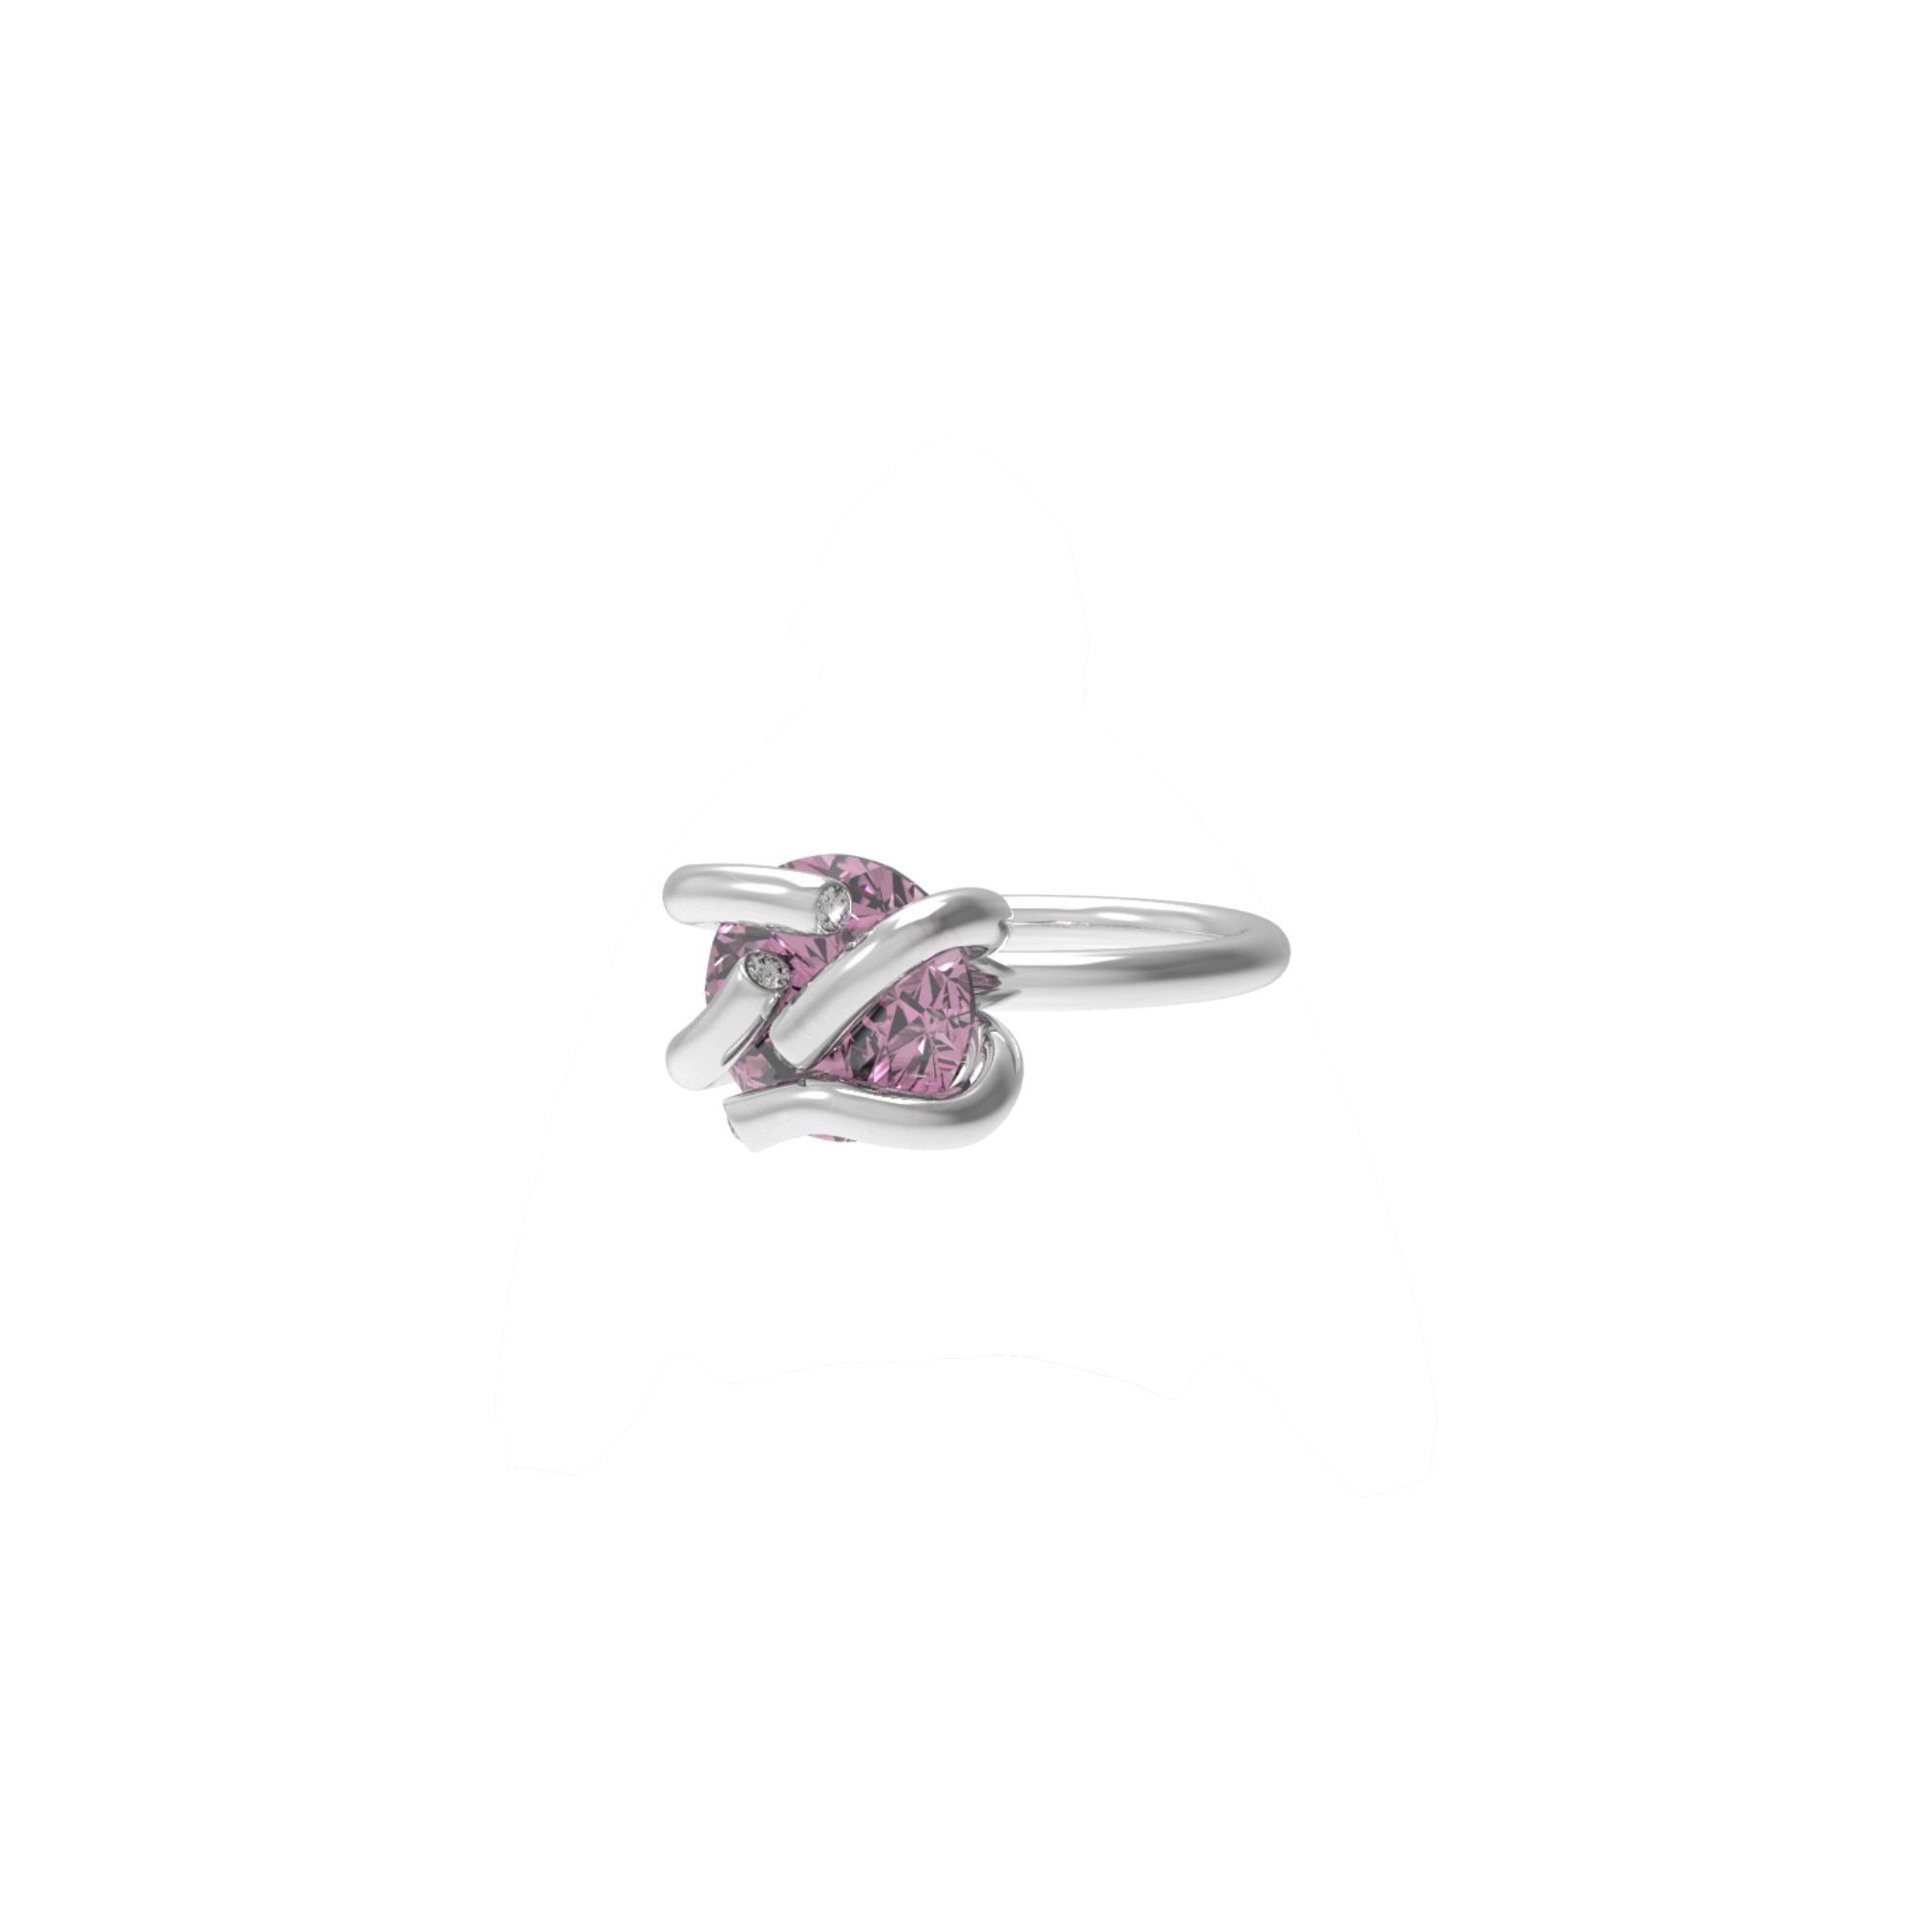 51 E JOHN Deconstruction Pink Twisted Prongs Ring | MADA IN CHINA